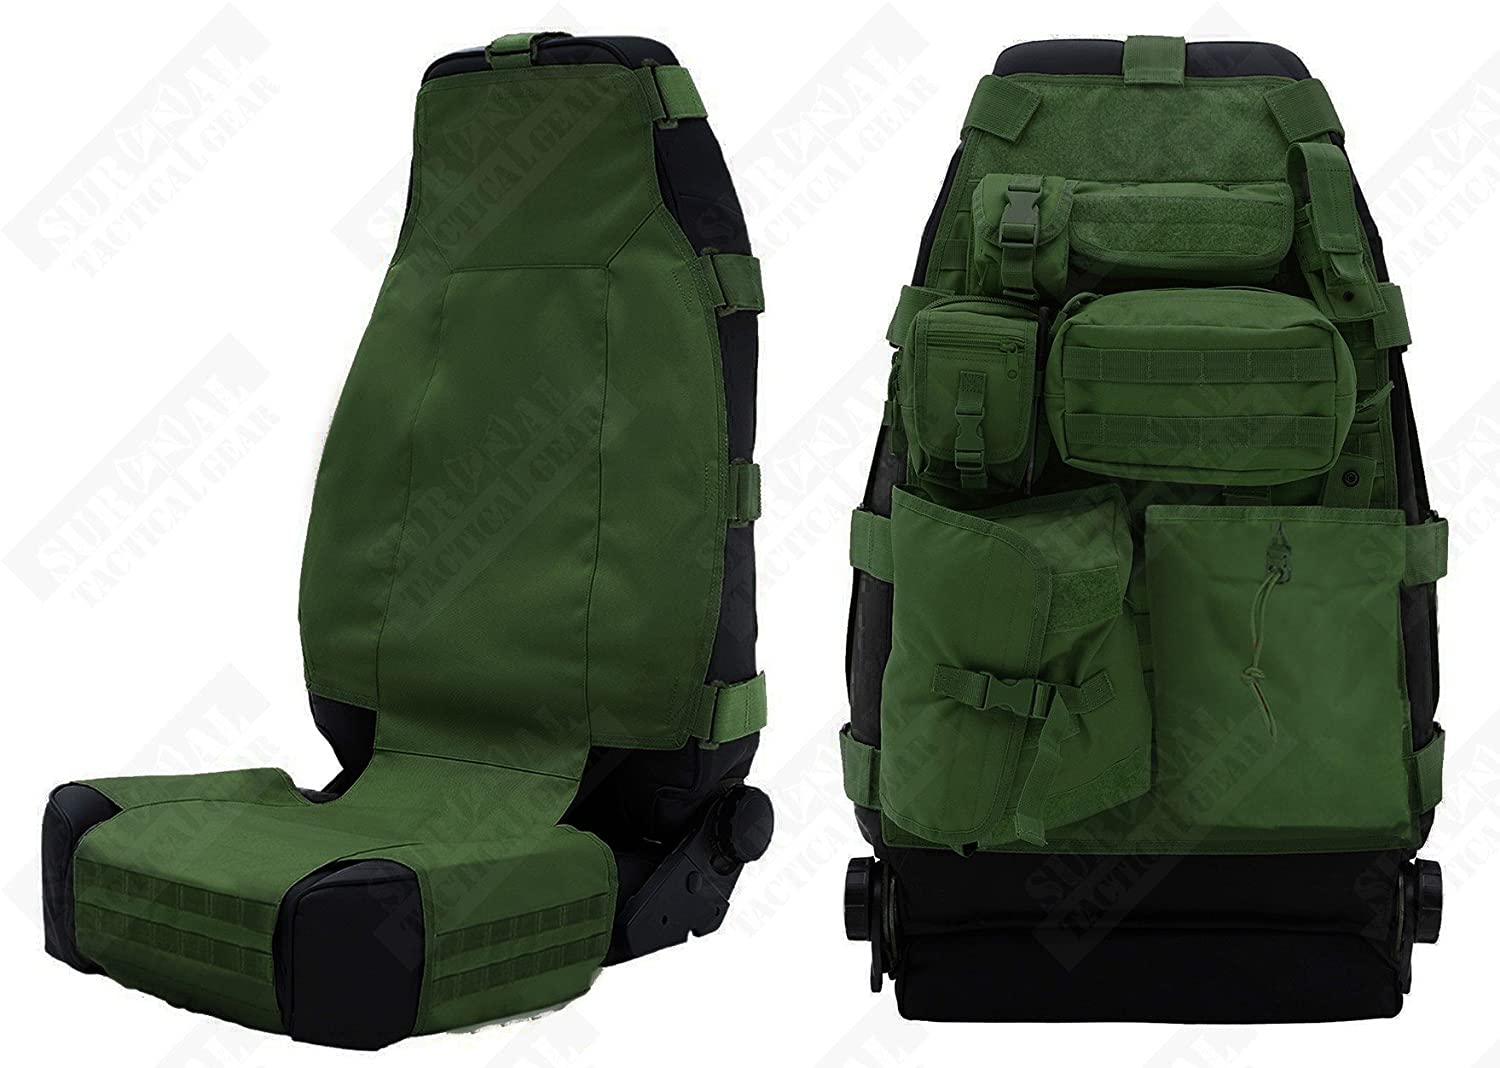 Molle Gear Seat Covers